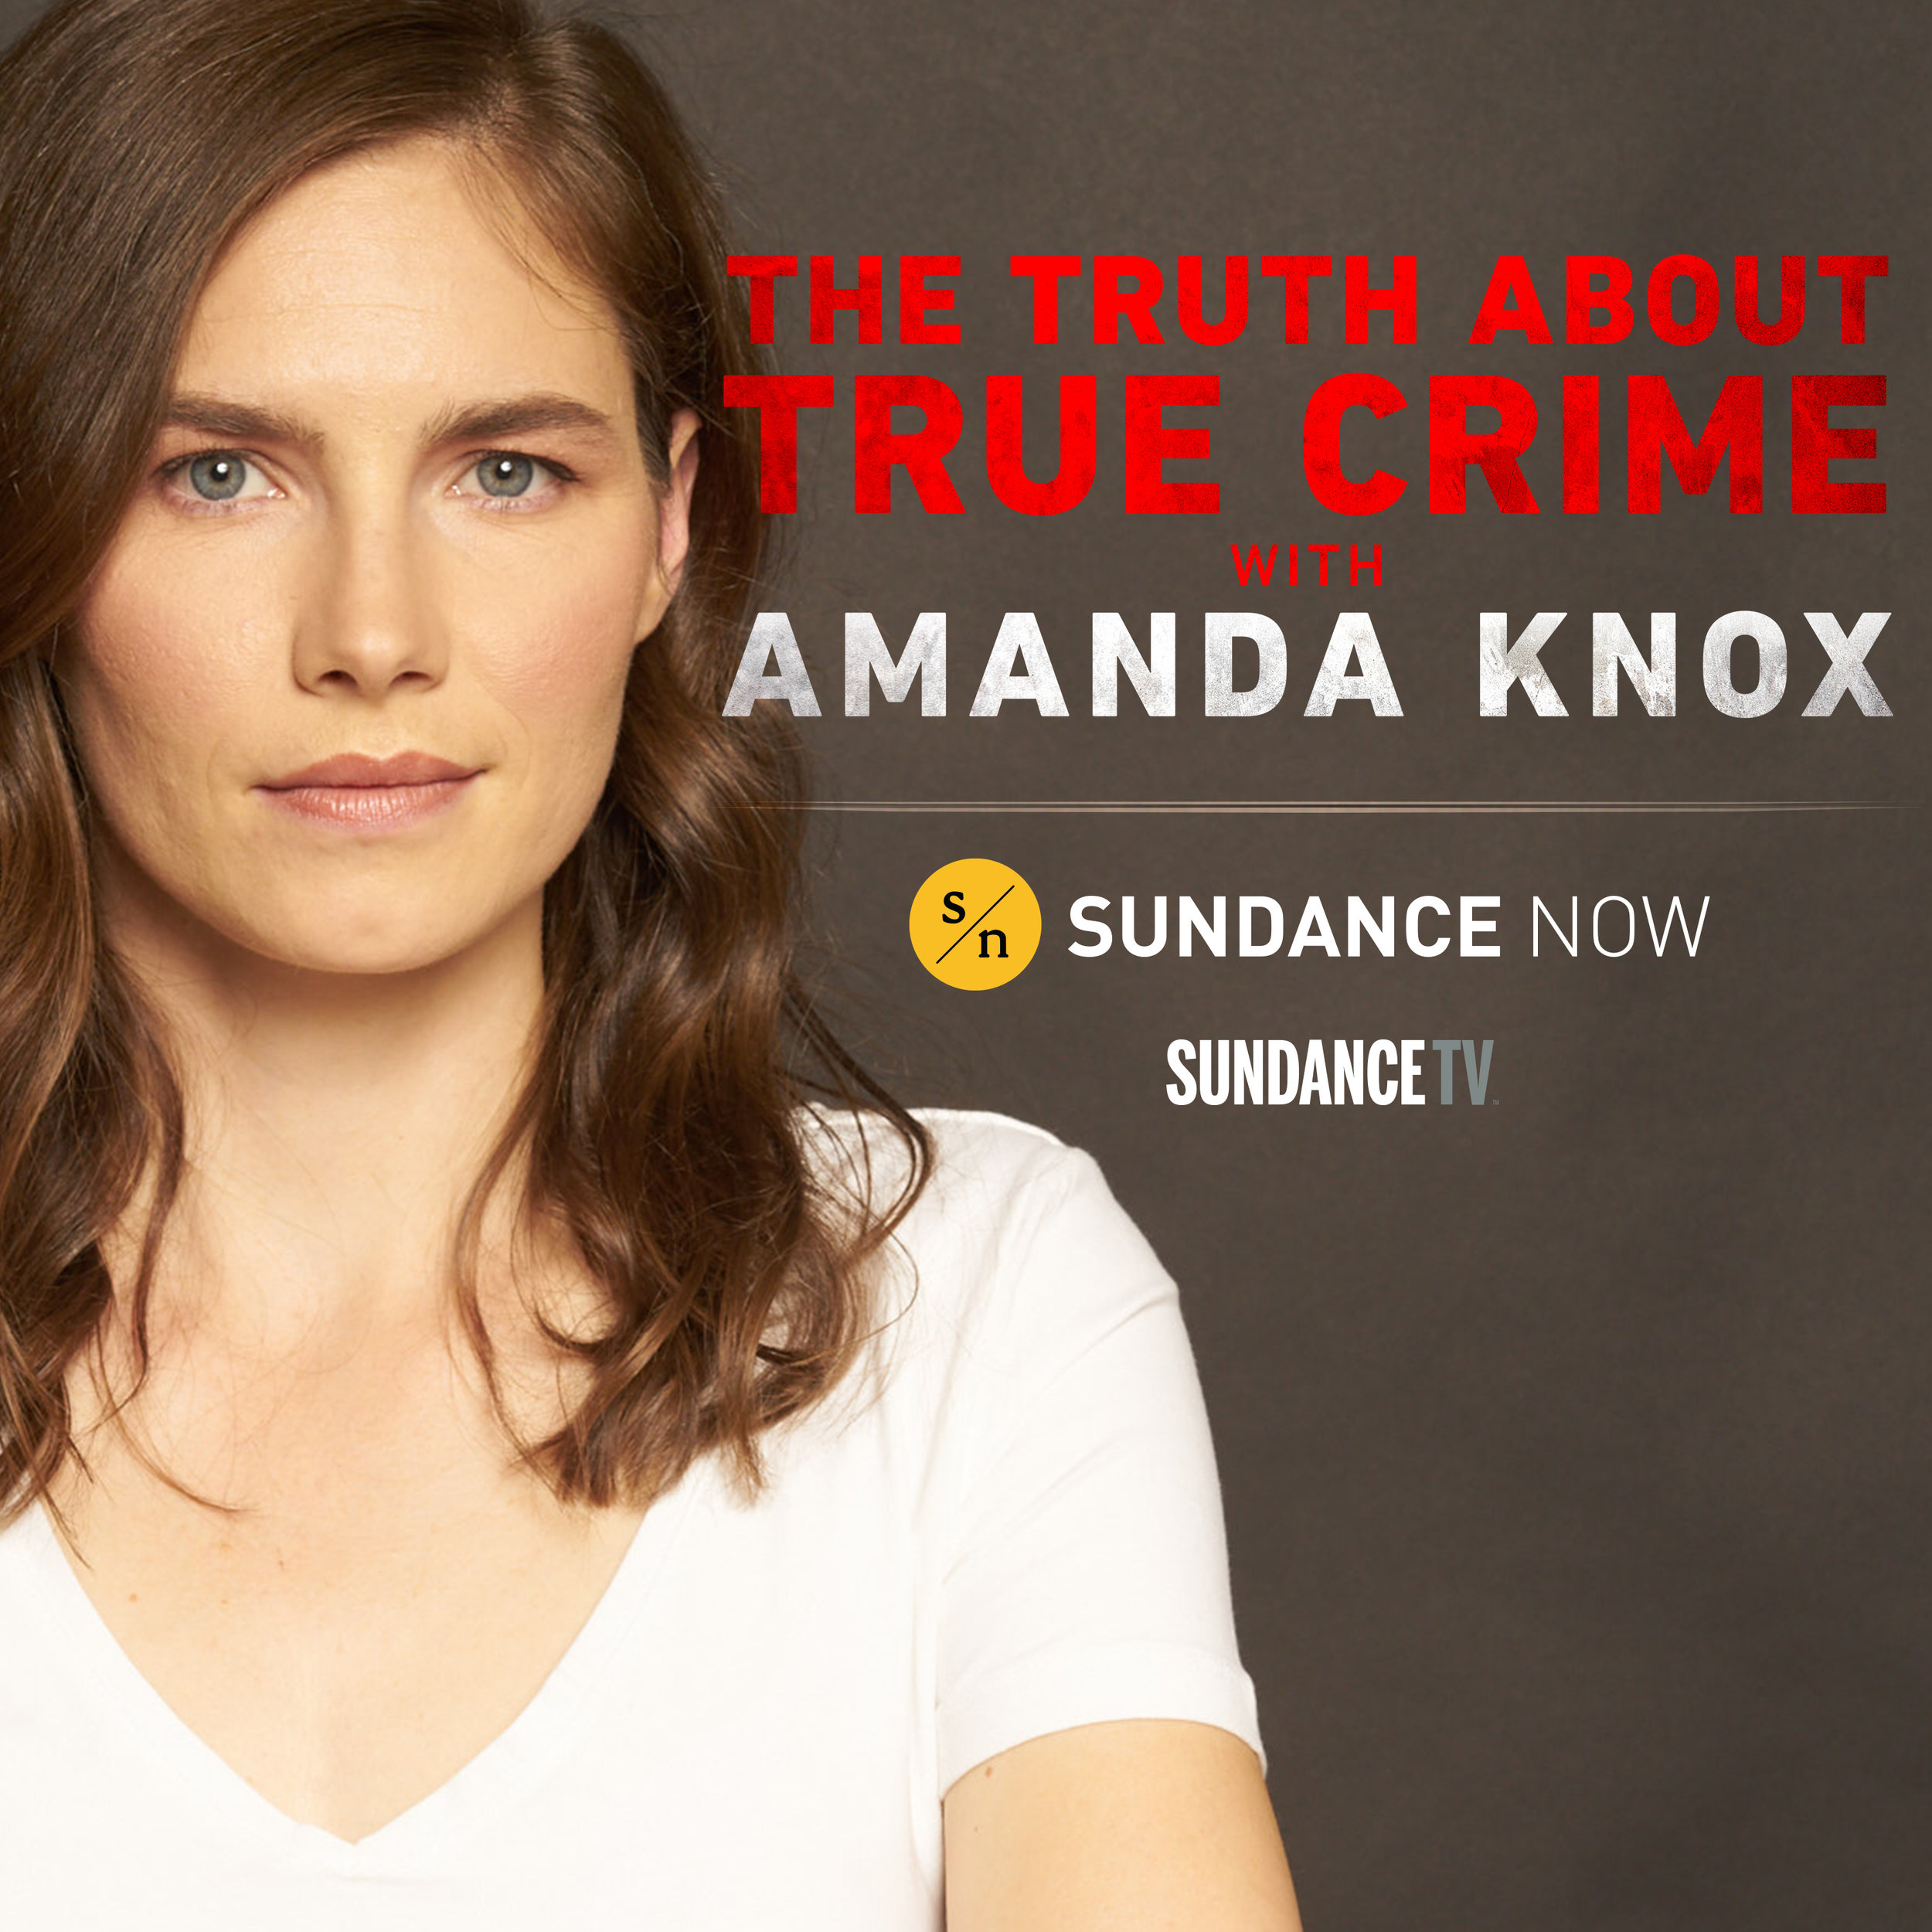 the-truth-about-true-crime-amanda-knox